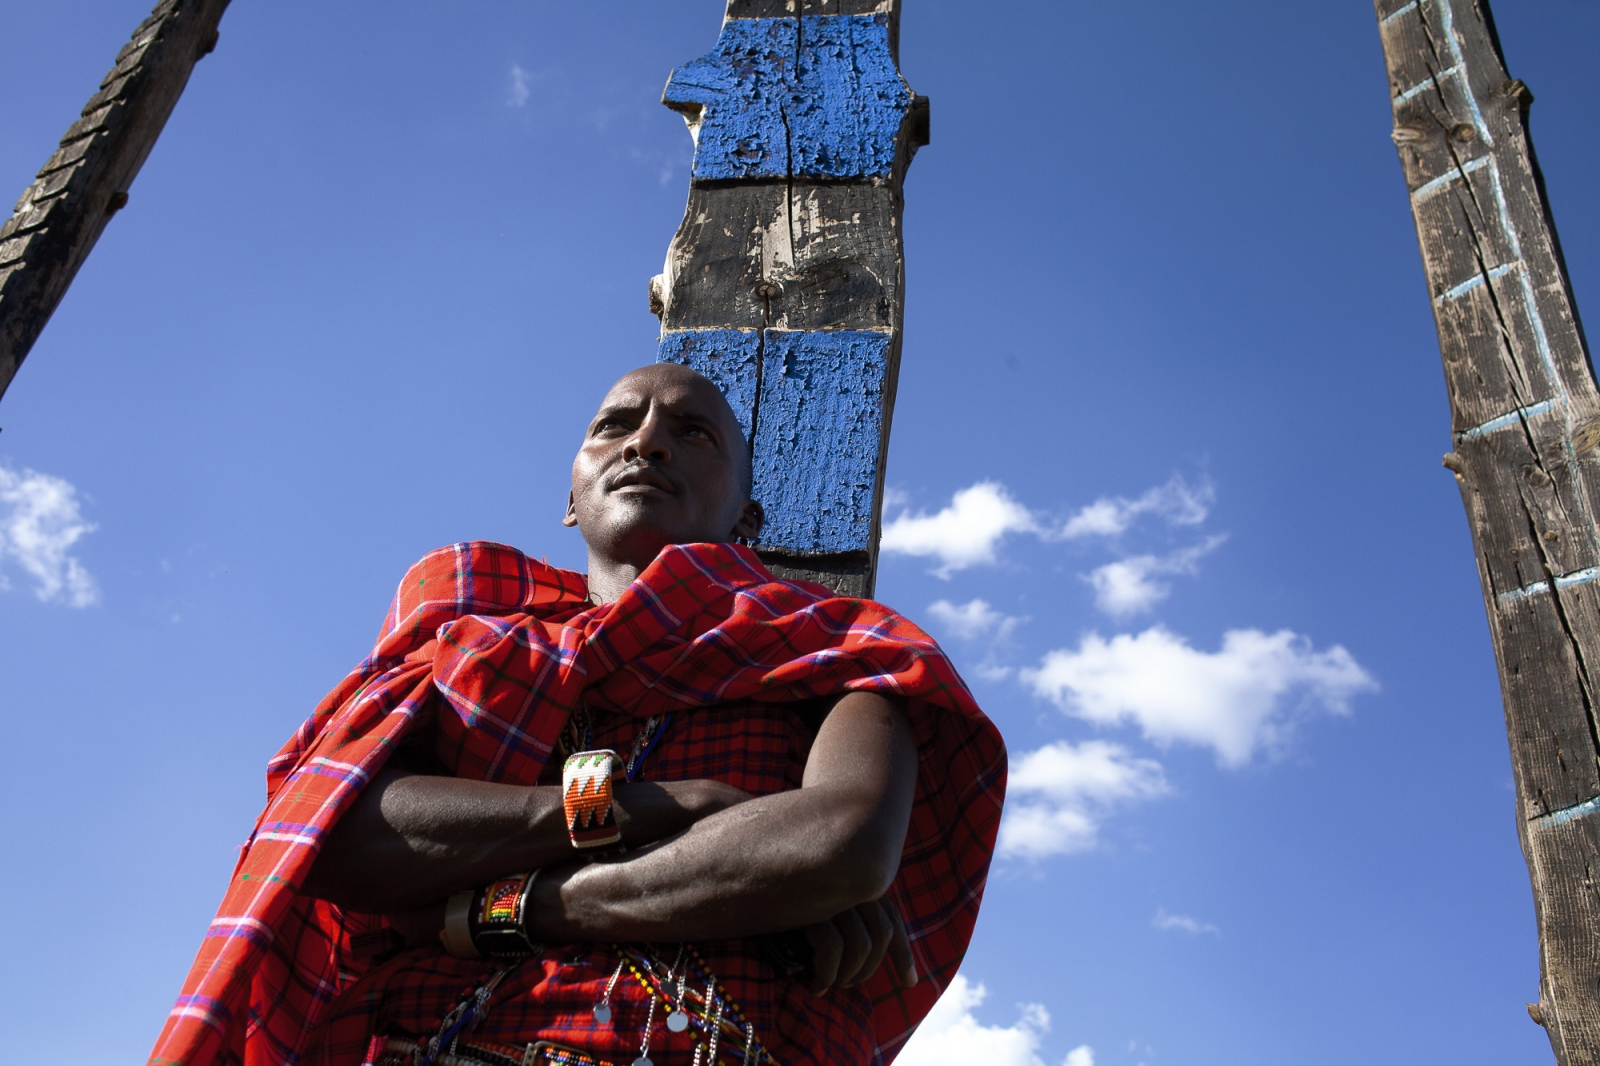 Nairobi, KENYA, October 31, 2014: Michael Pesi, a Maasai warrior poses for a portrait during the UNEP development conference at UN headquaters in Nairobi.